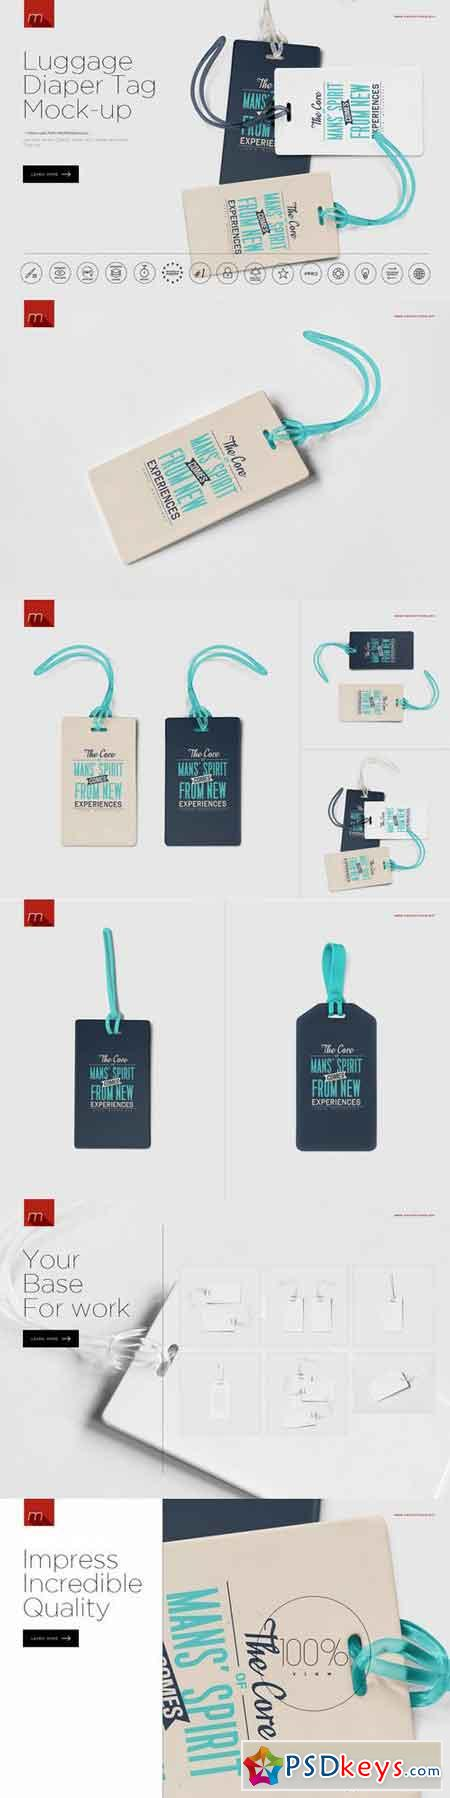 Luggage Diaper Tag Mock-up 615332